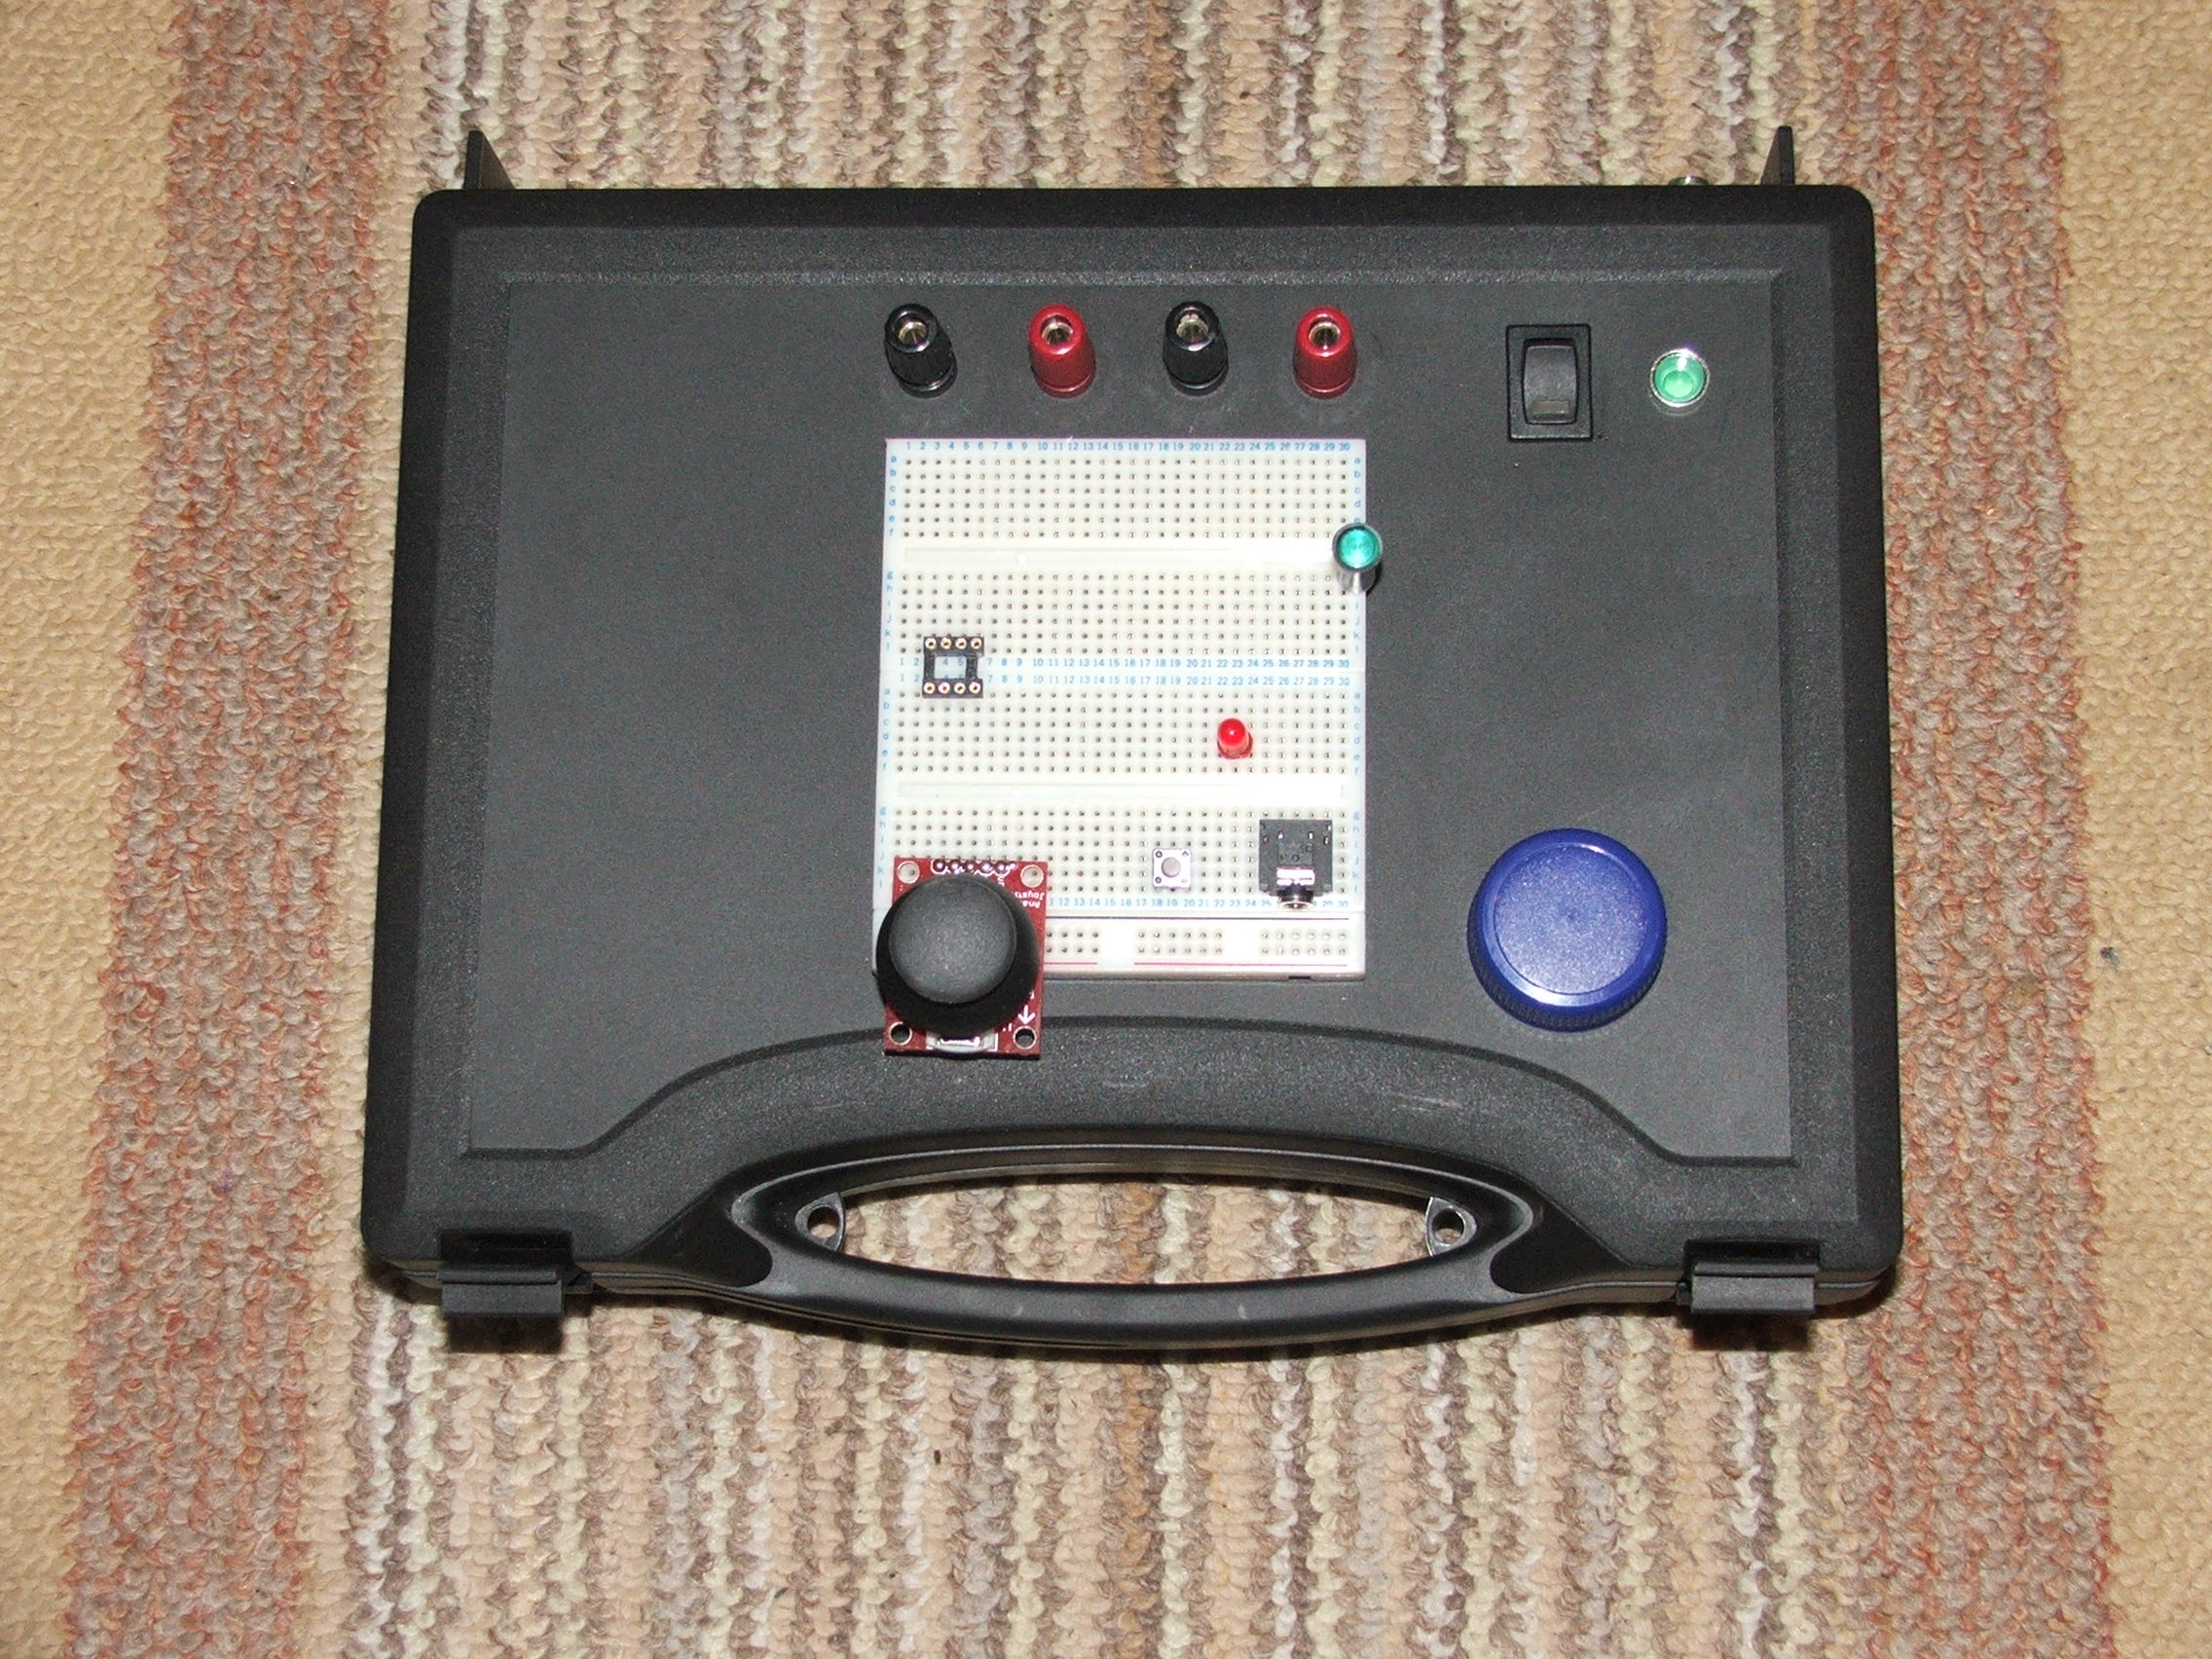 Easy prototype breadboard unit with DUAL PSU's and less then $10